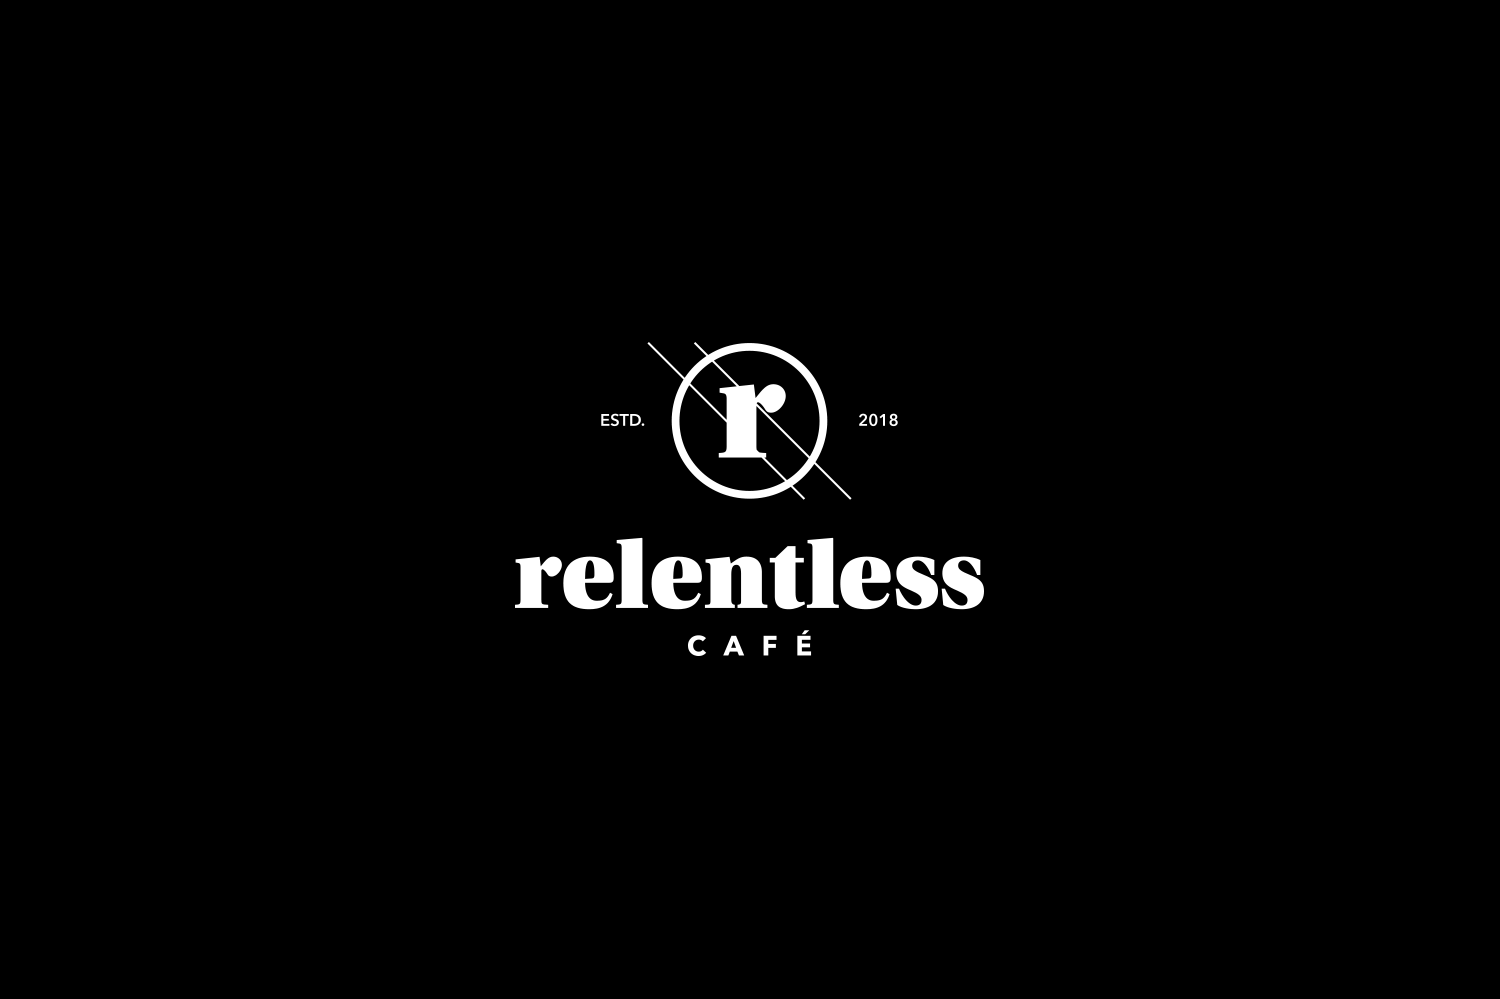 https://i2.wp.com/alemartir.com/ale/wp-content/uploads/2020/10/alemartir-logofolio-3-relentless.png?fit=1500%2C999&ssl=1